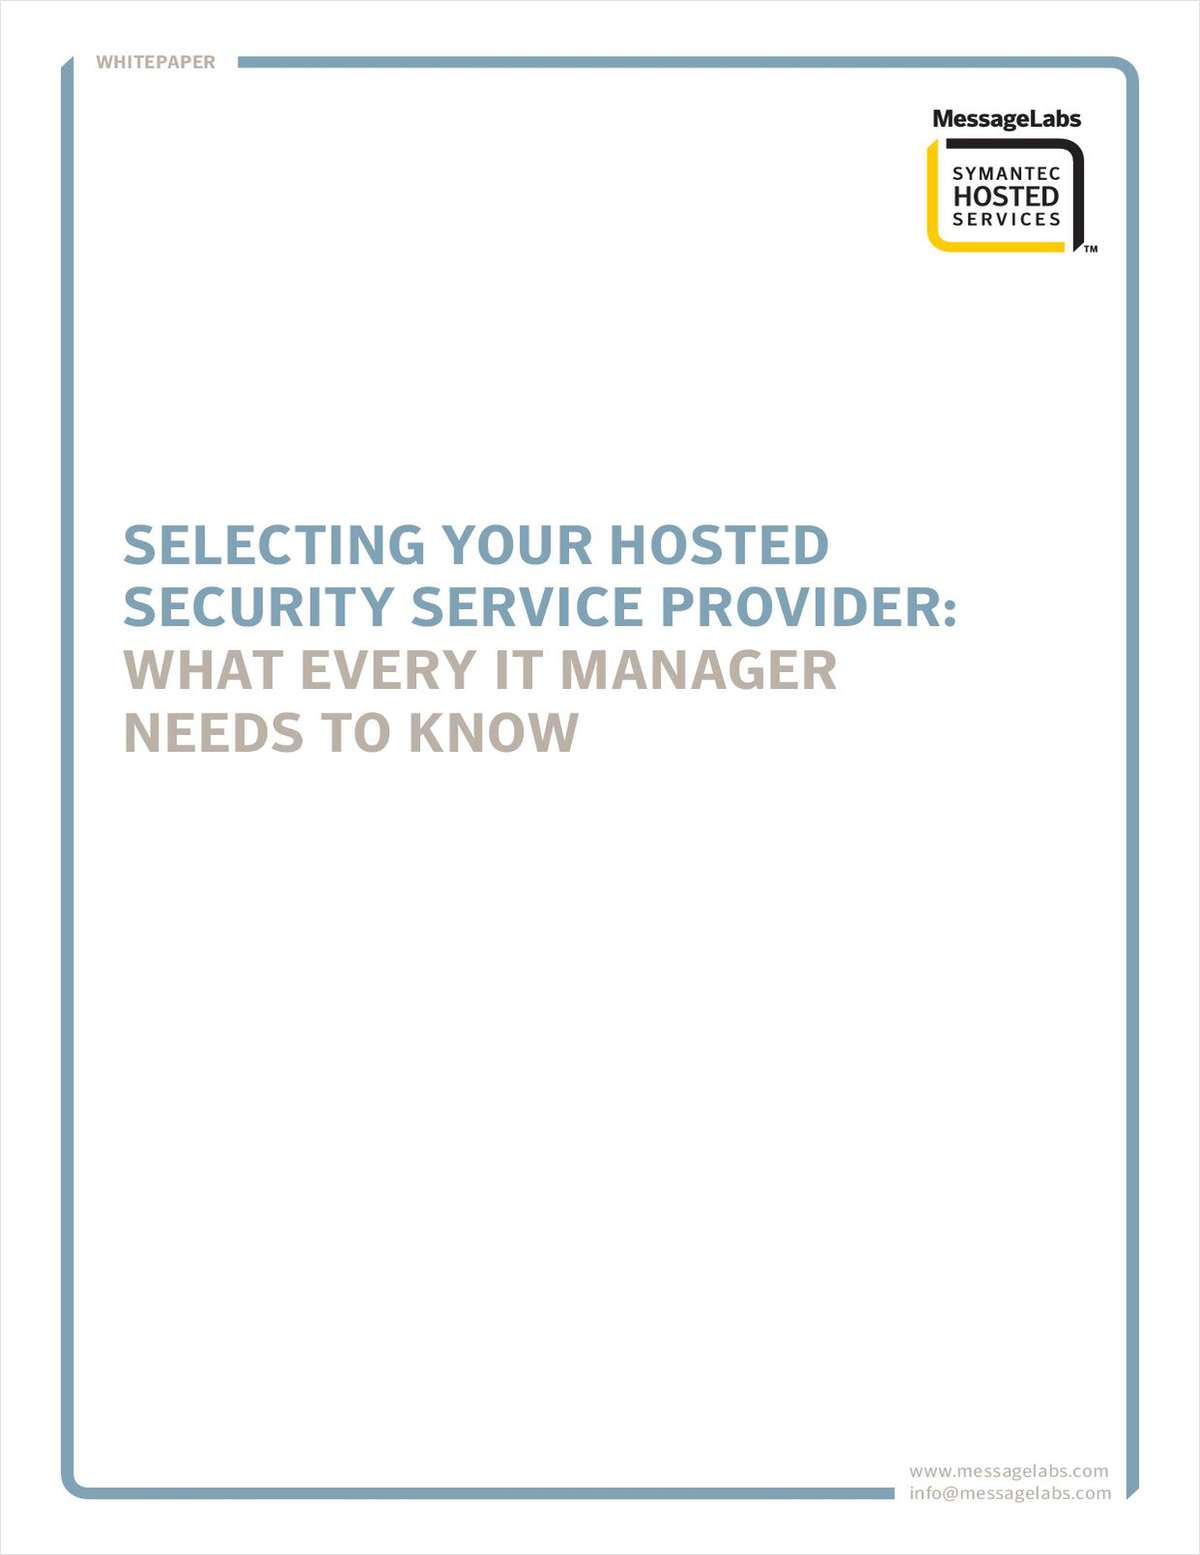 Selecting Your Hosted Security Service Provider-What Every IT Manager Should Know